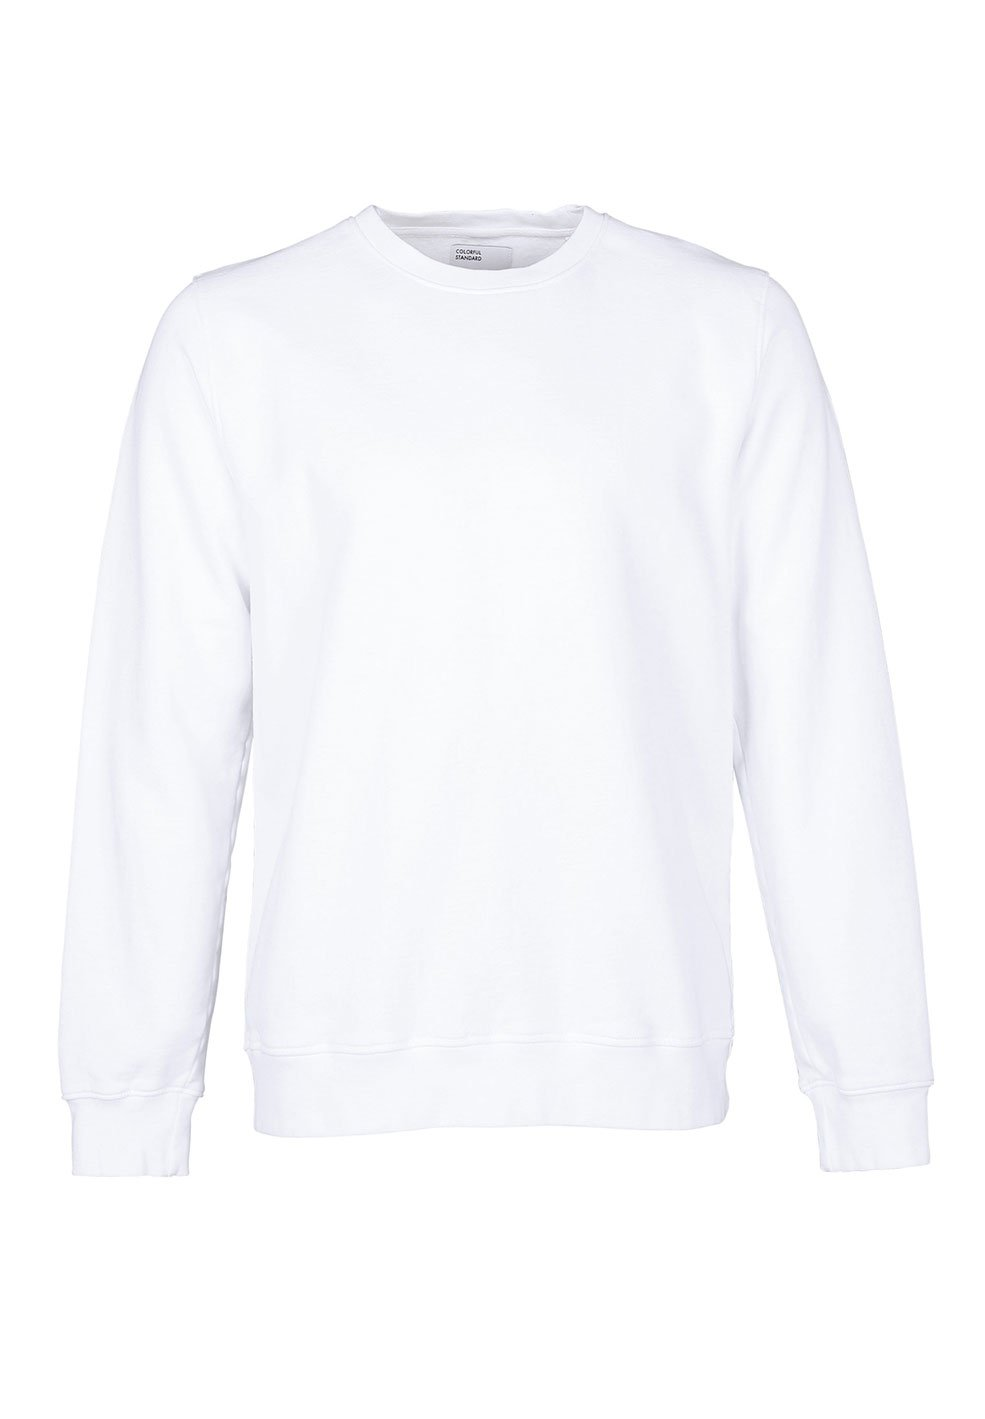 Colorful Standard COLORFUL STANDARD classic organic crew neck sweater optical white (unisex)